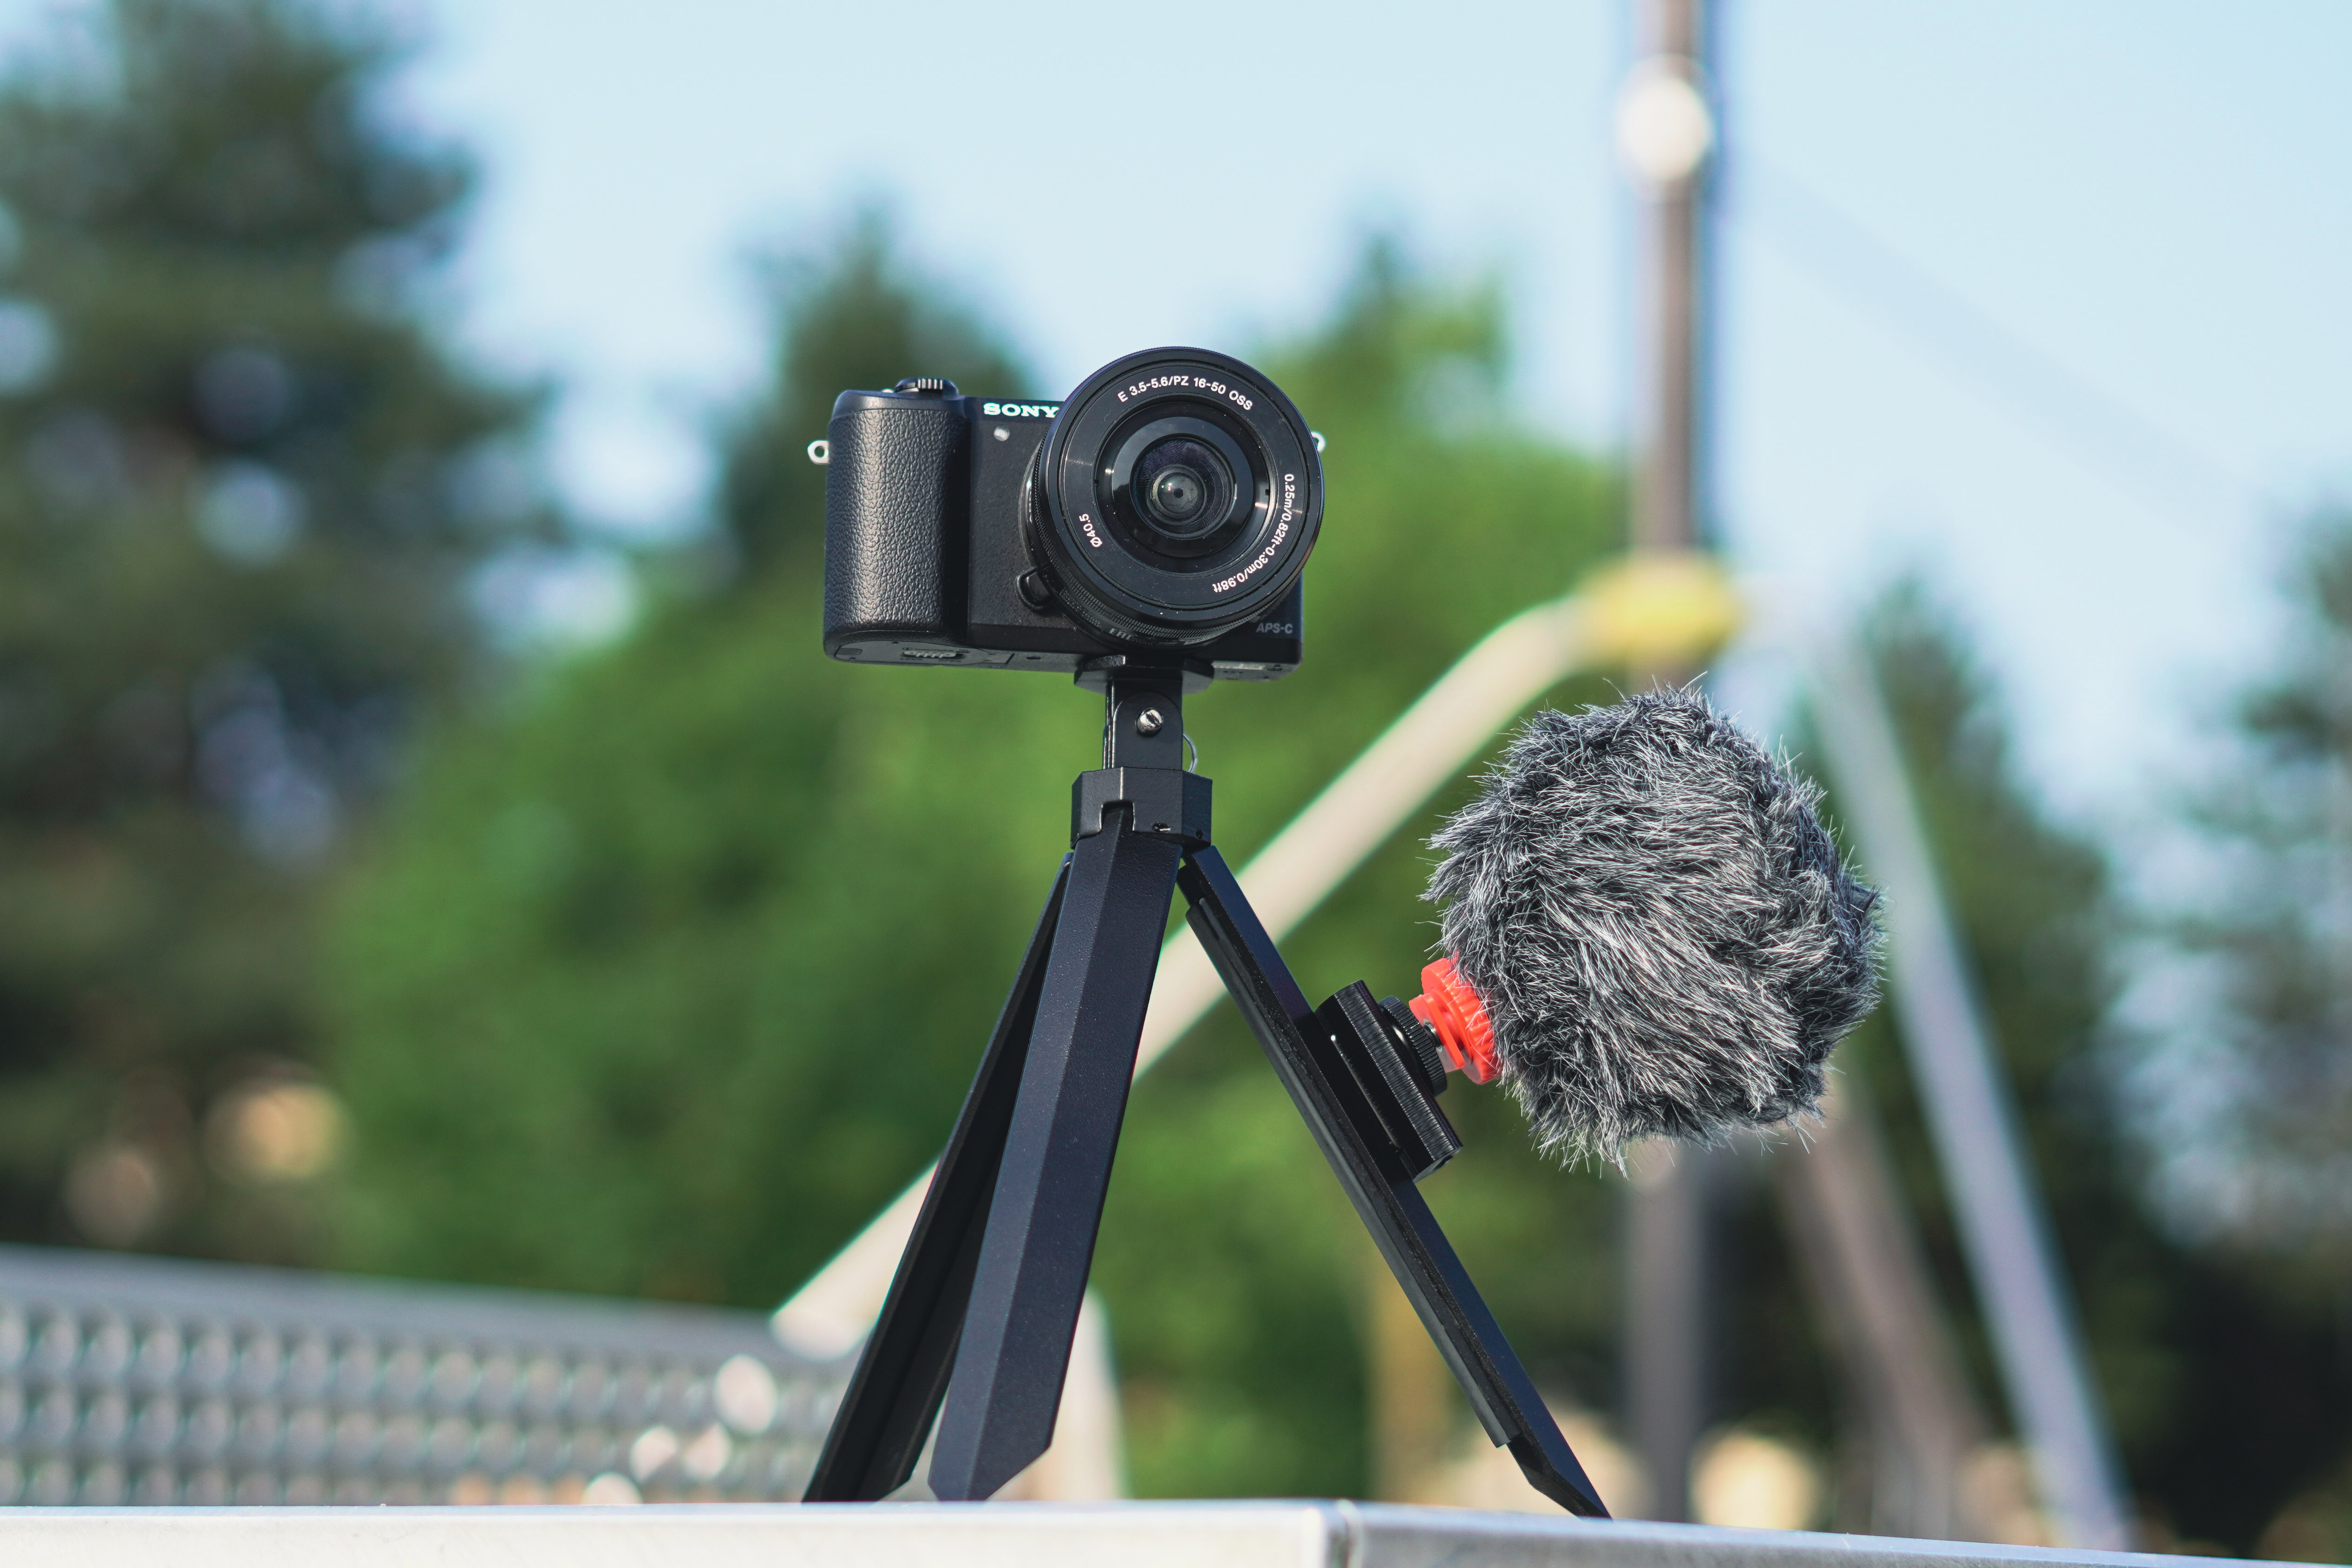 Utilizing an optional magnetic cold shoe bracket, camera accessories such as microphones can be stuck onto the Hookpod Pro's magnetic leg